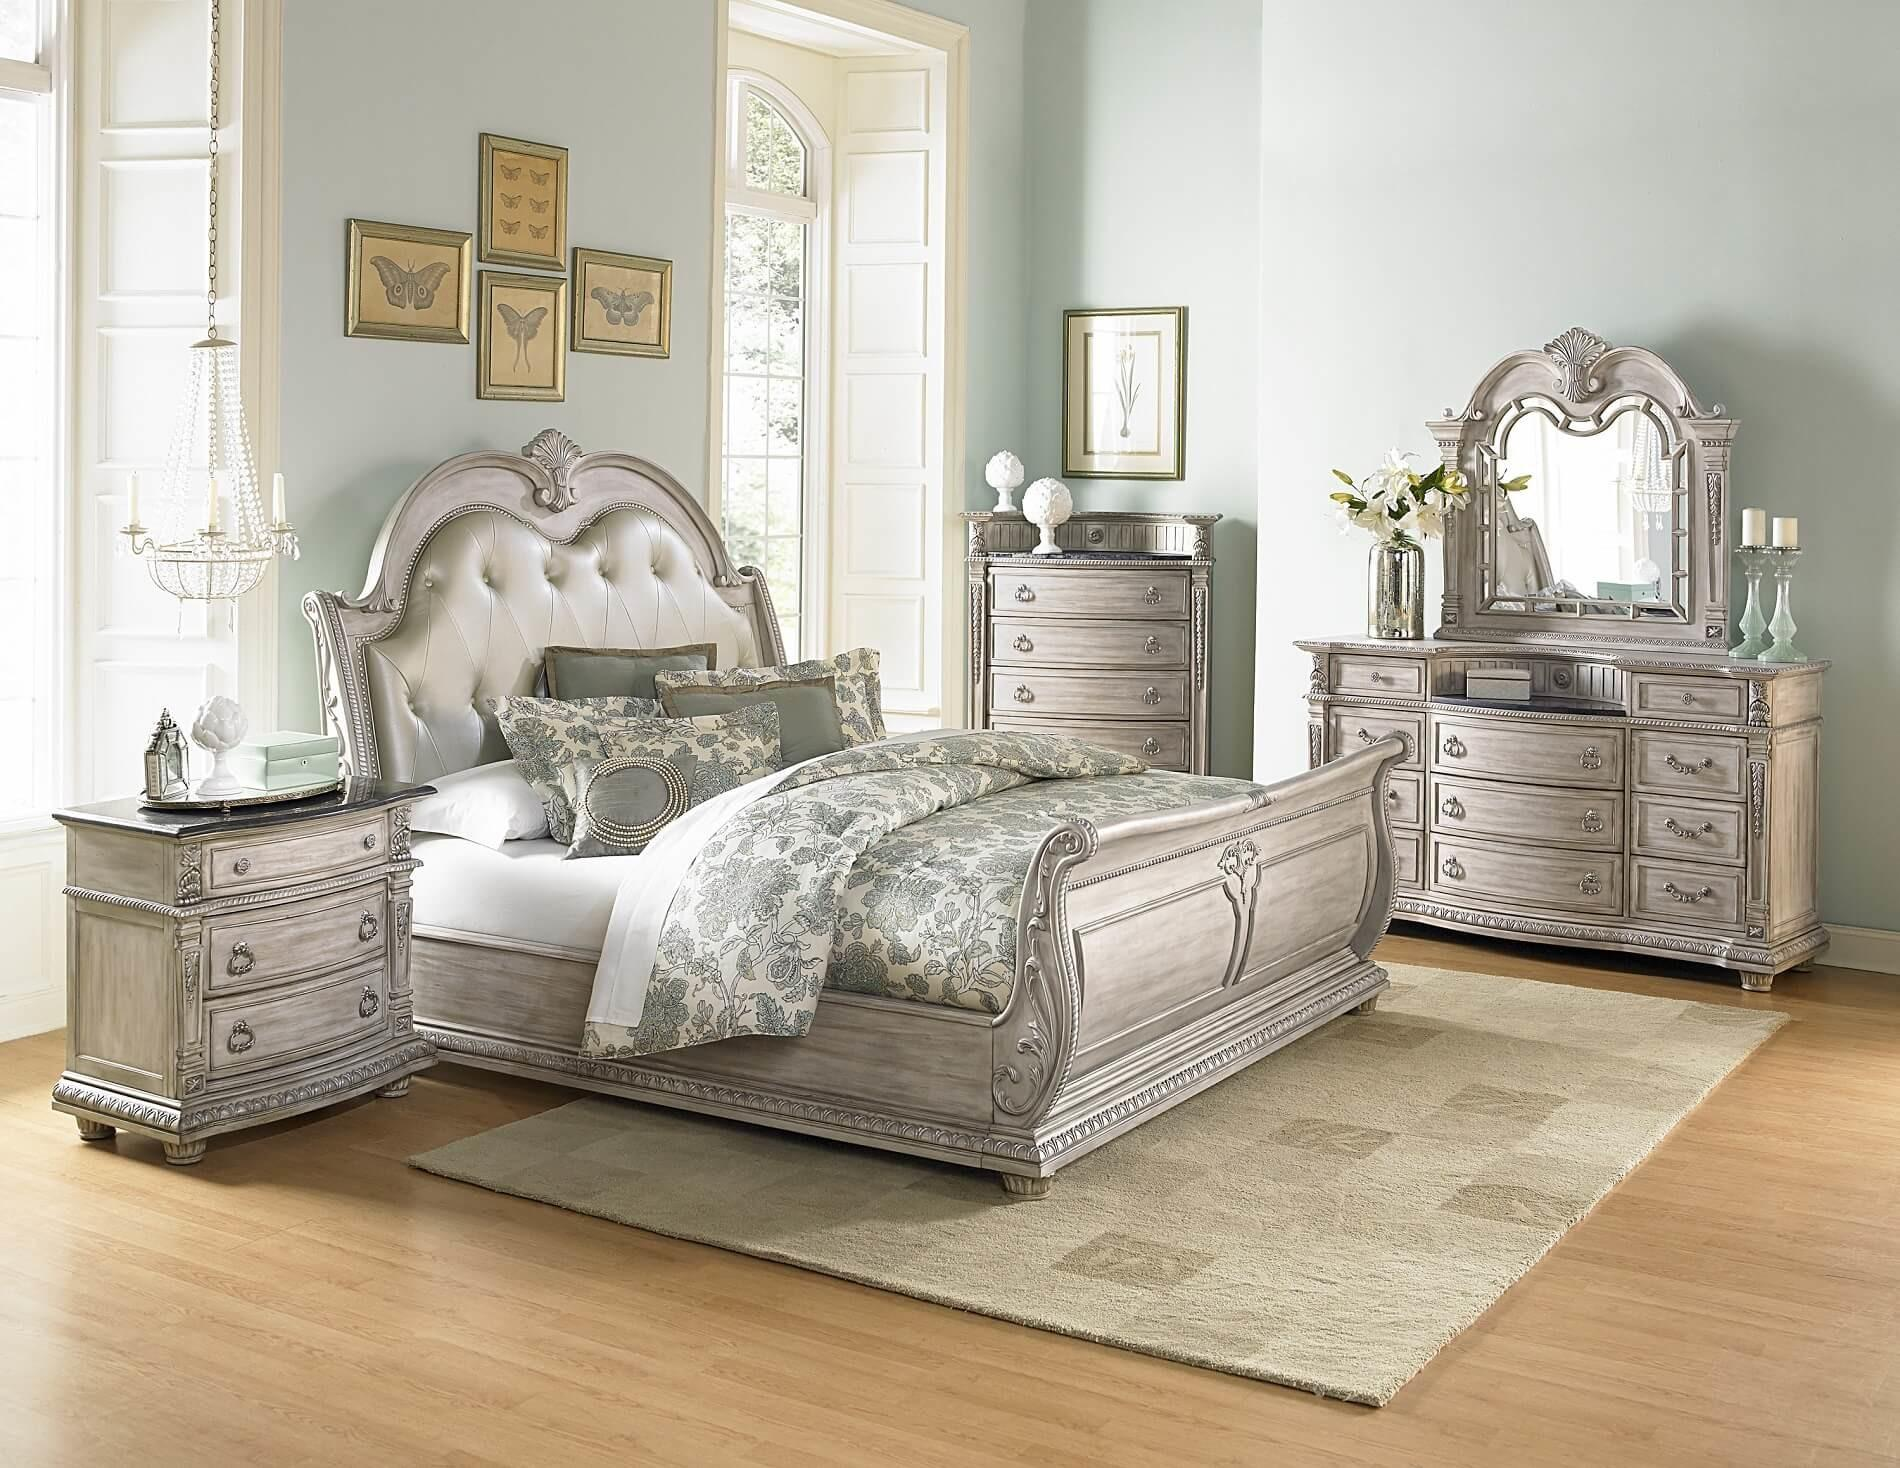 Piece Homelegance Palace White Wash Sleigh Bedroom Set